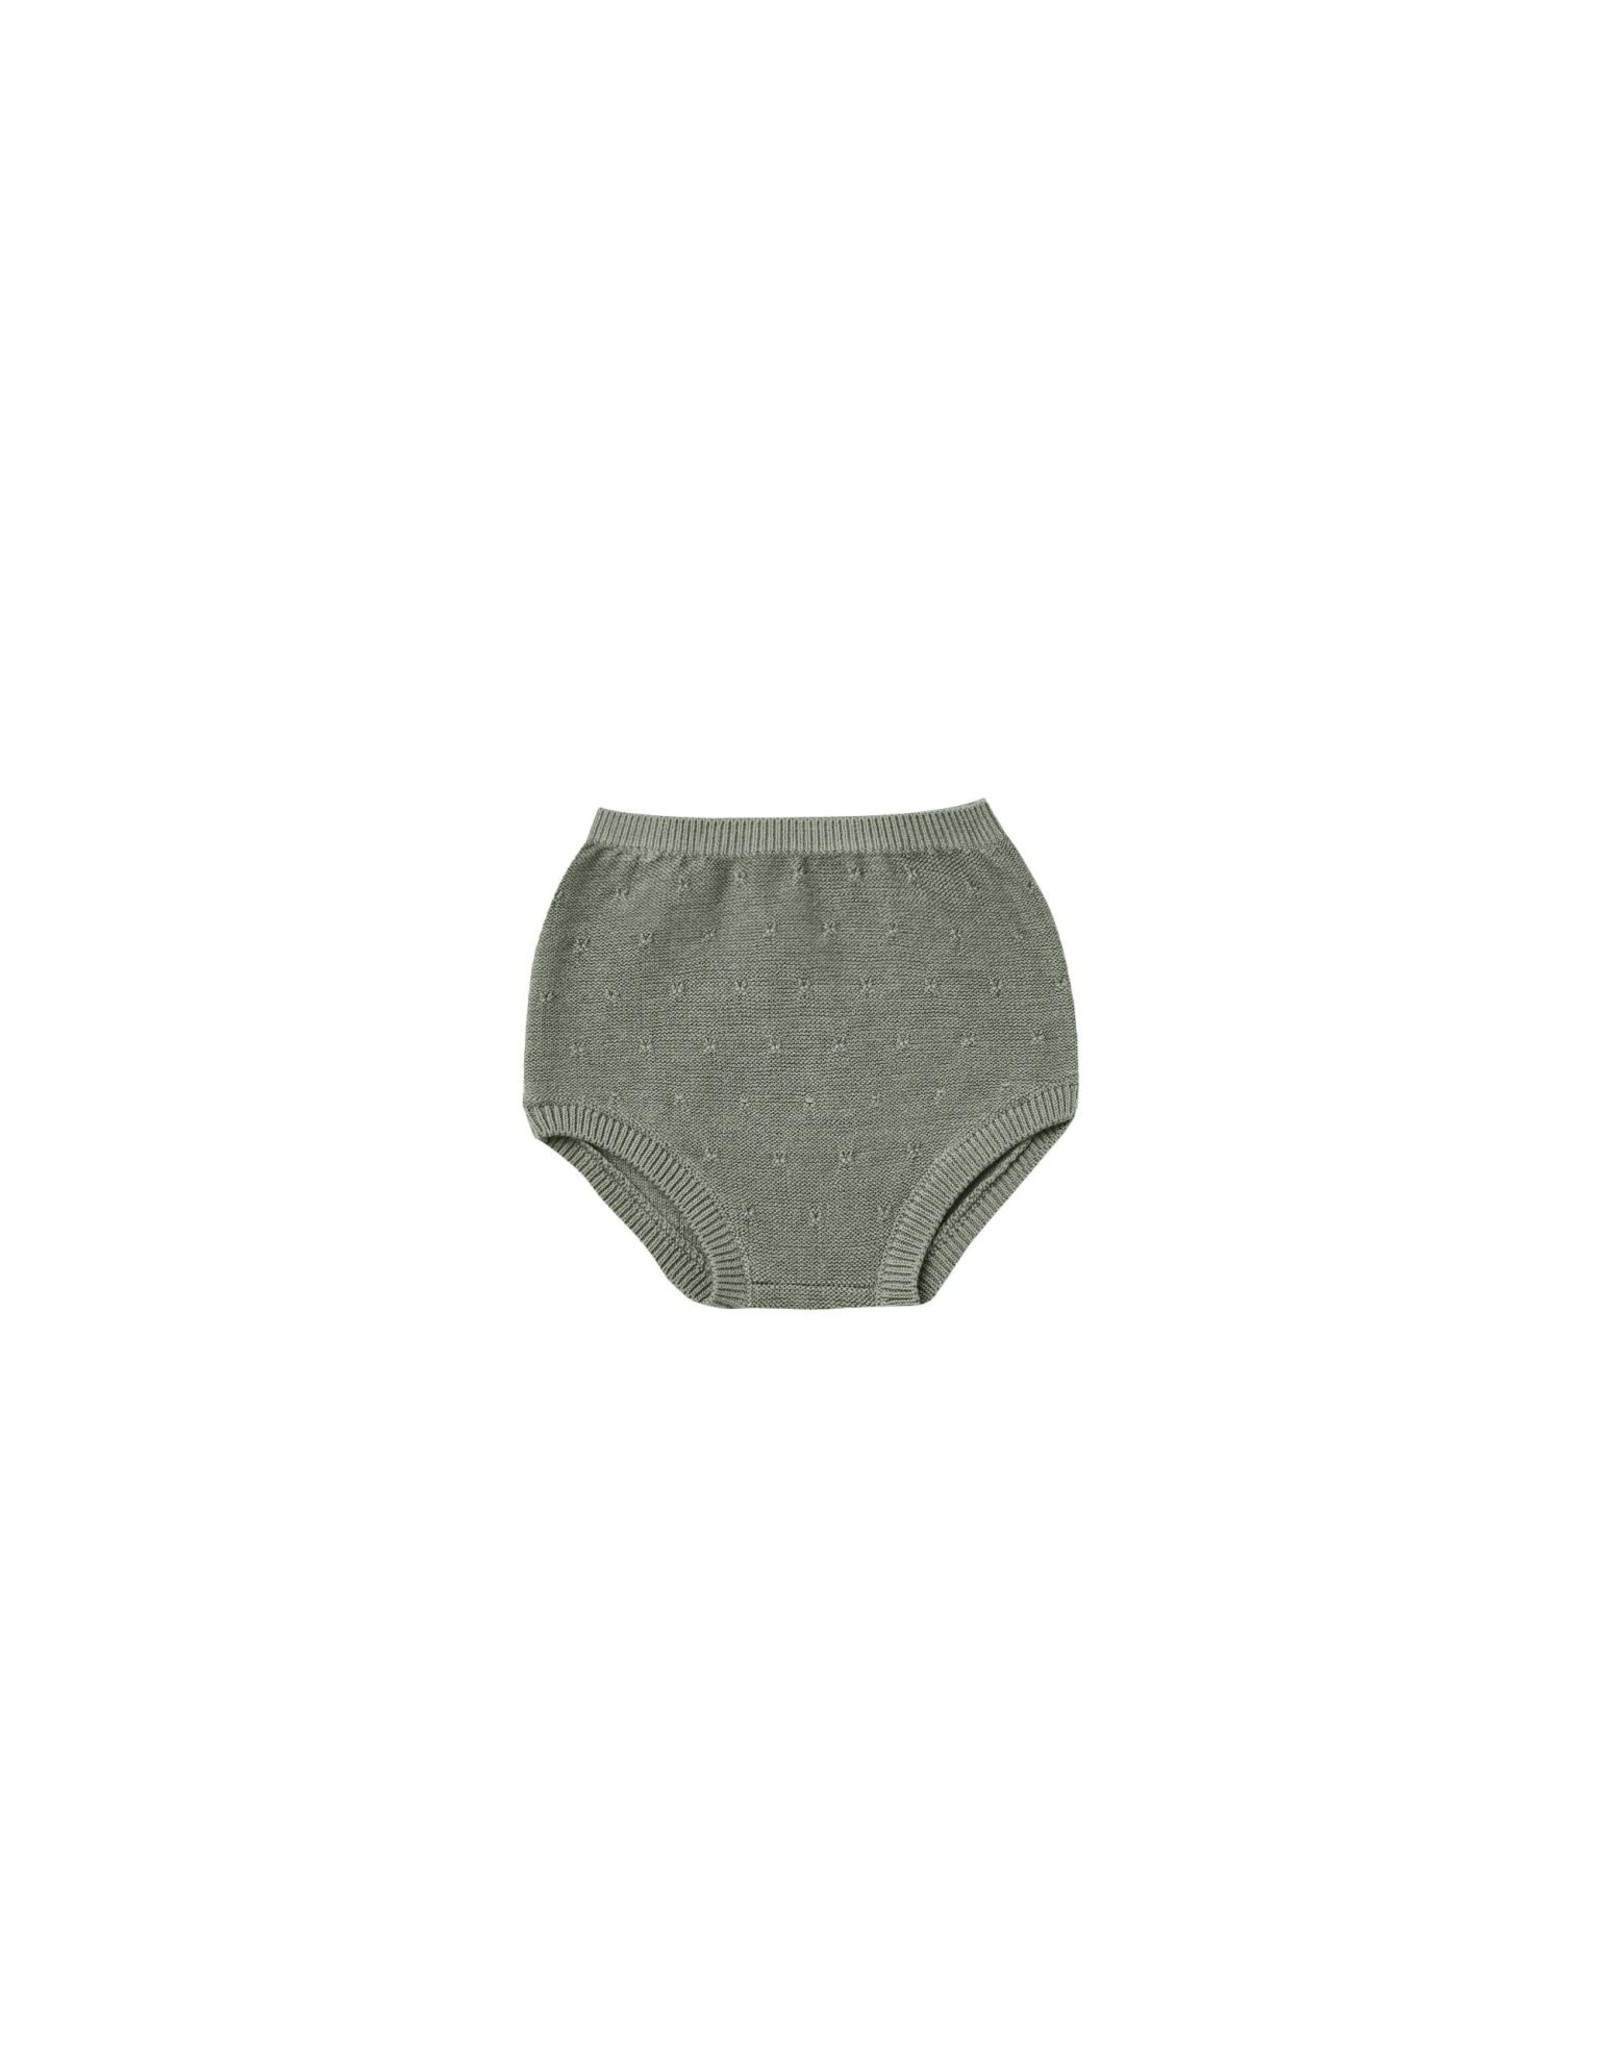 Quincy Mae knit bloomers- basil